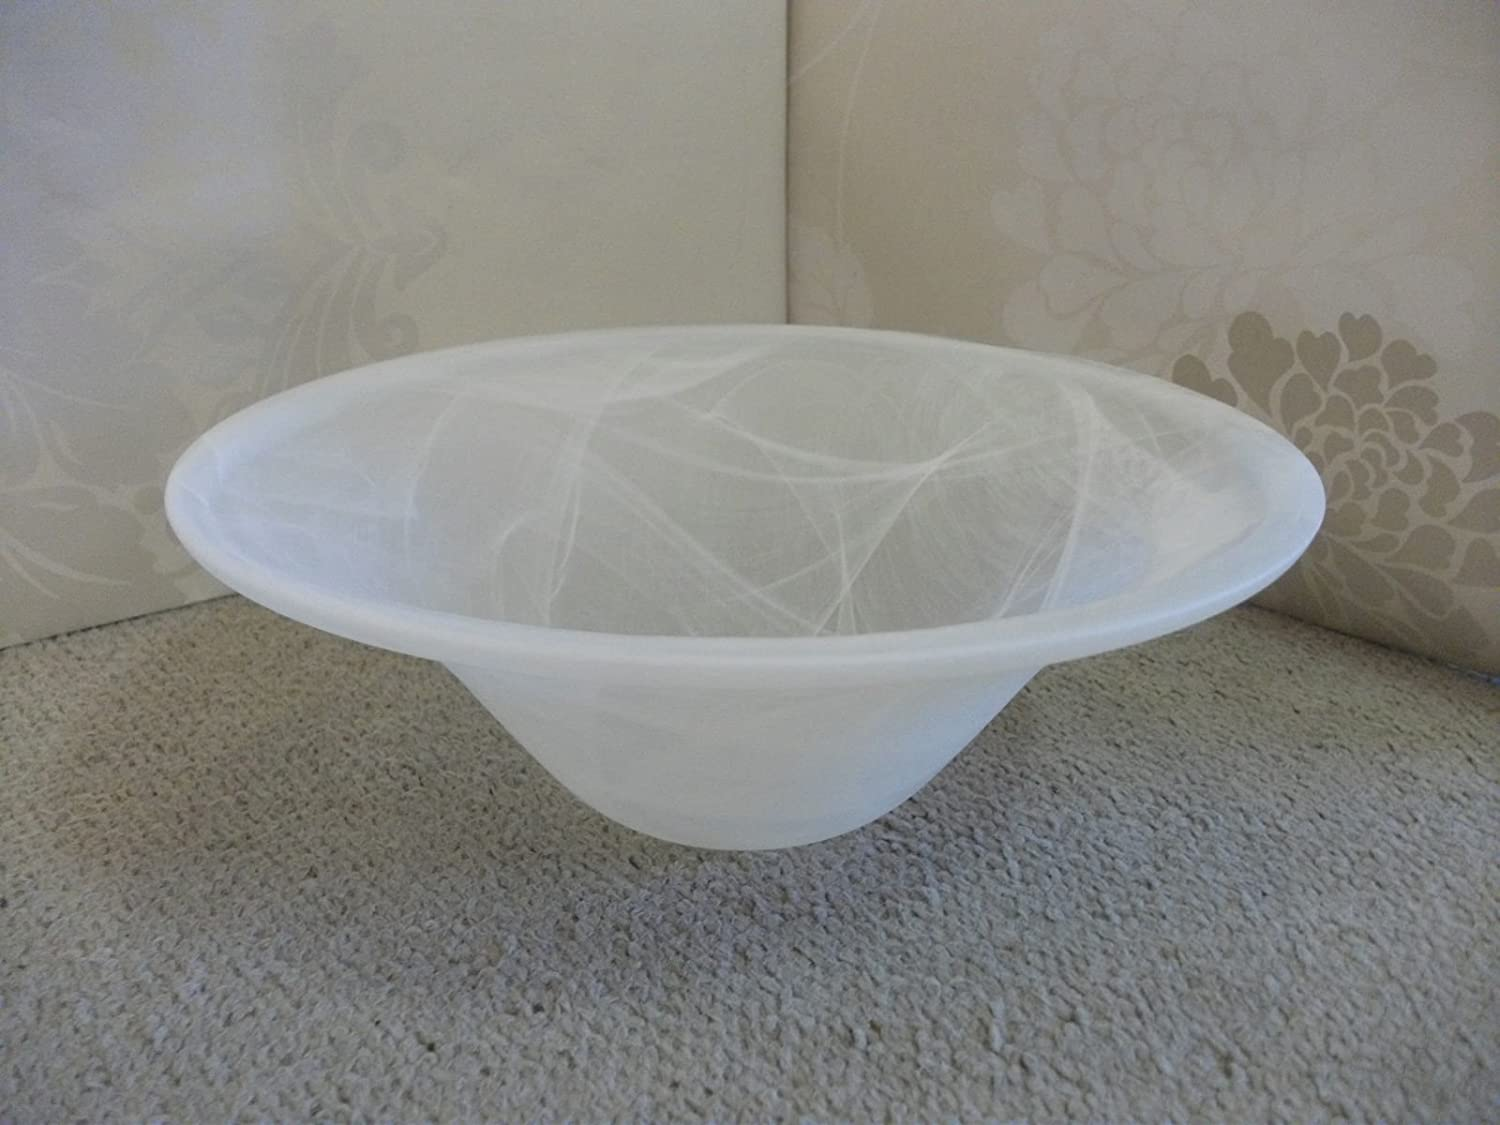 40cm WHITE BOWL Replacement Glass Shade for uplighter lamp or pendant fitting Wisteria